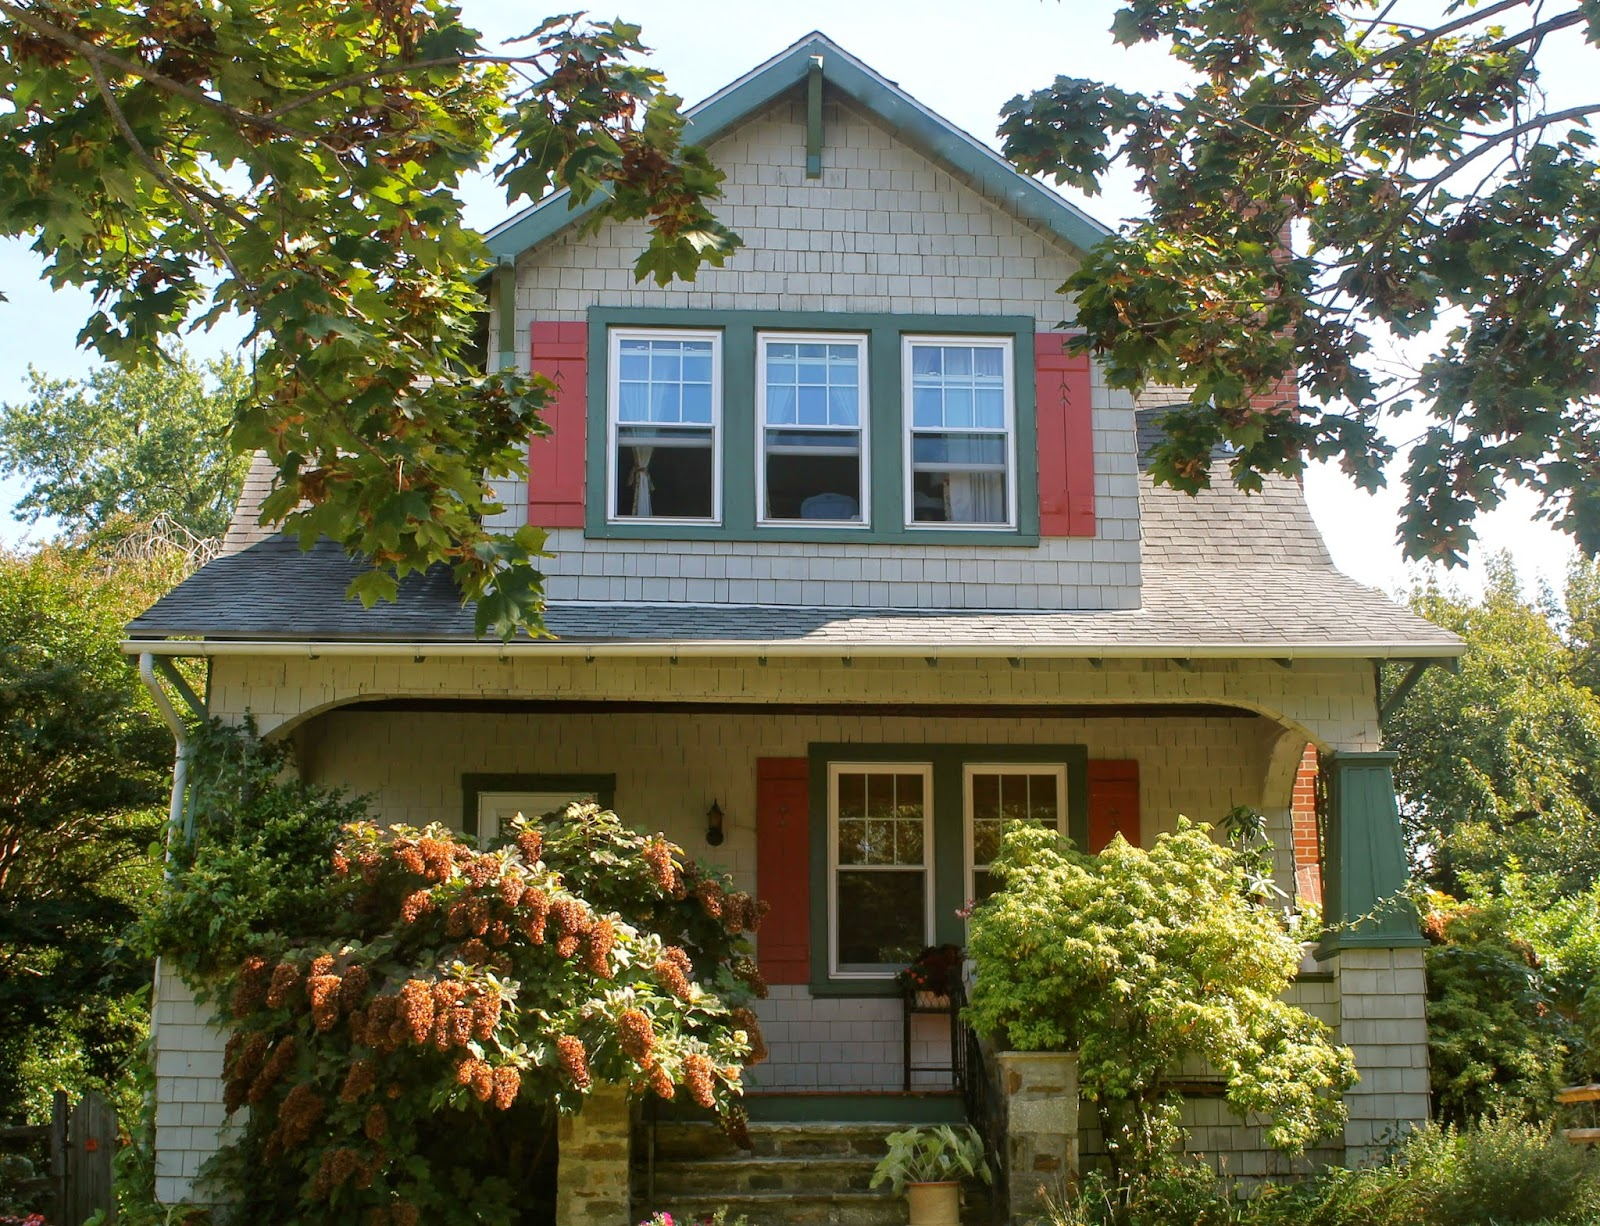 B'more Bungalow: Craftsman Bungalows on 1905 colonial home, 1905 bungalow home, 1905 victorian home,